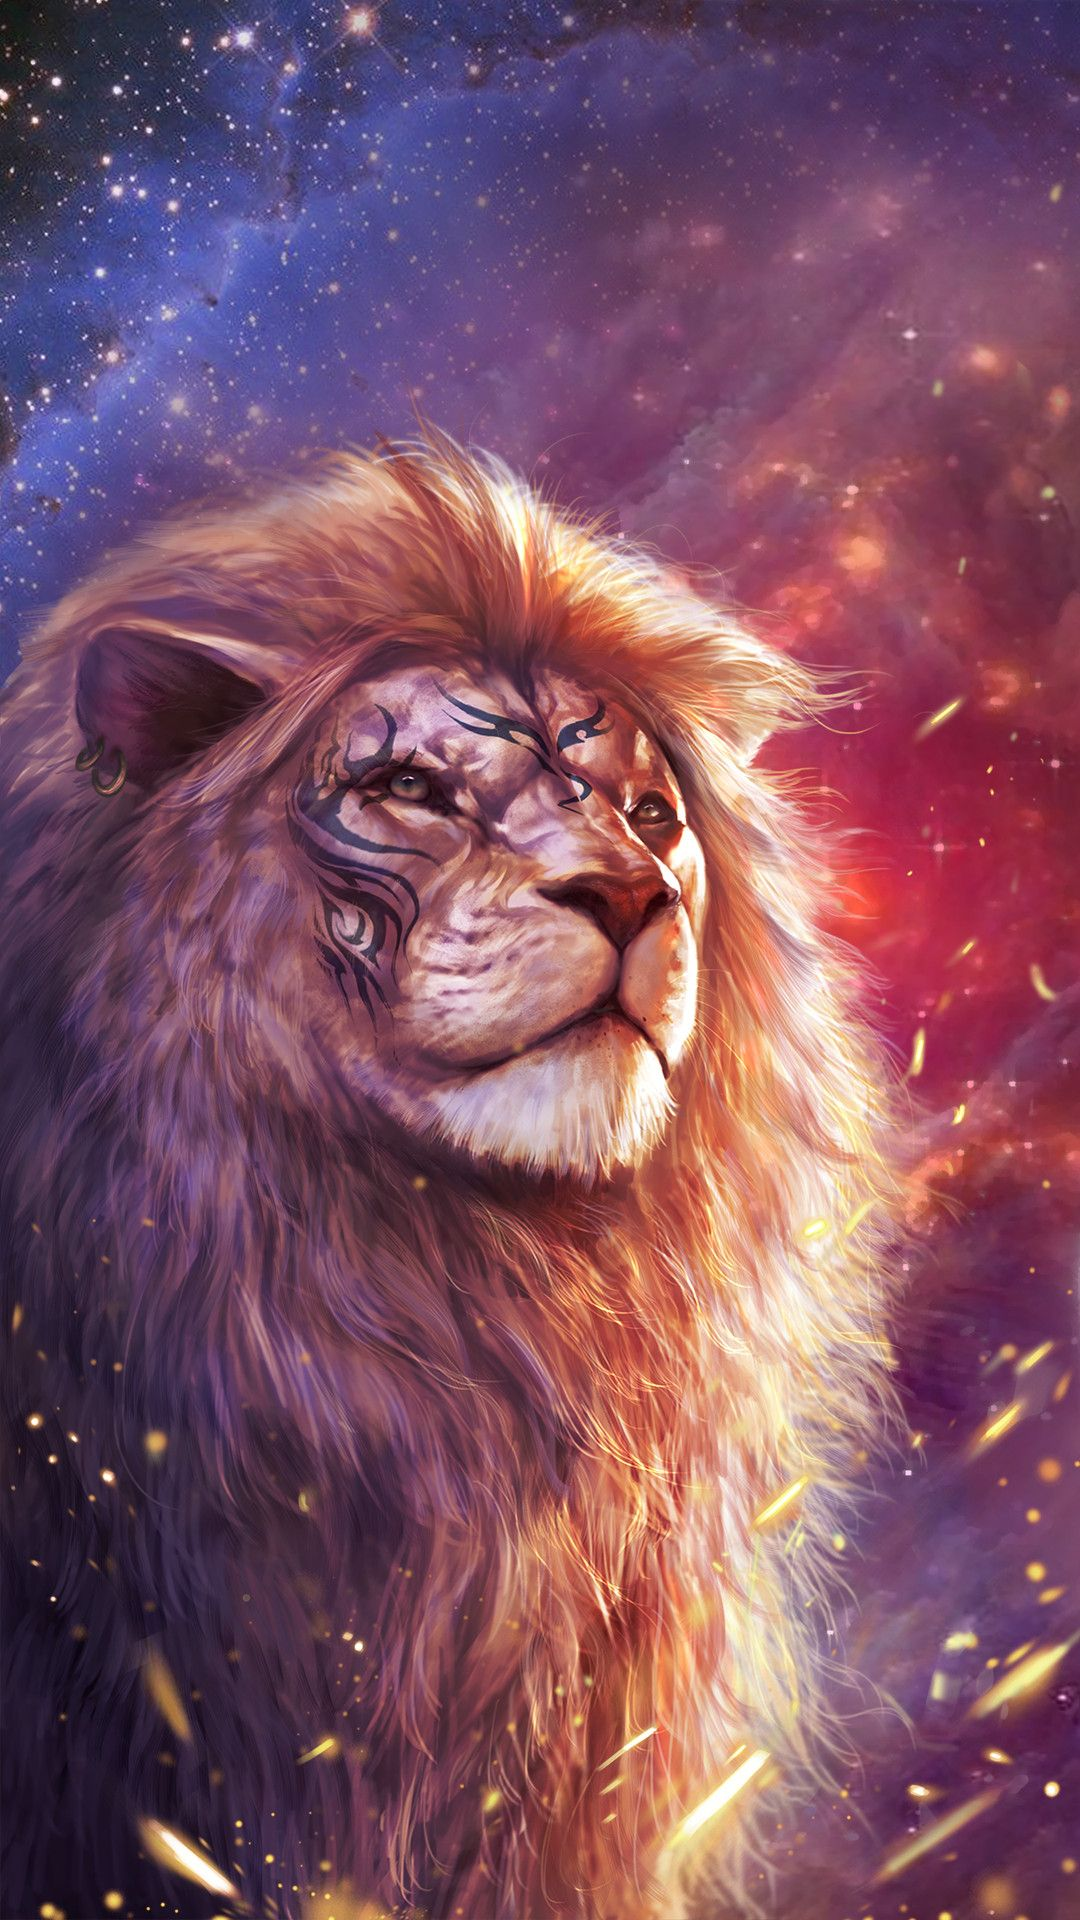 1080x1920 68+ Lion Pictures Wallpapers on WallpaperPlay